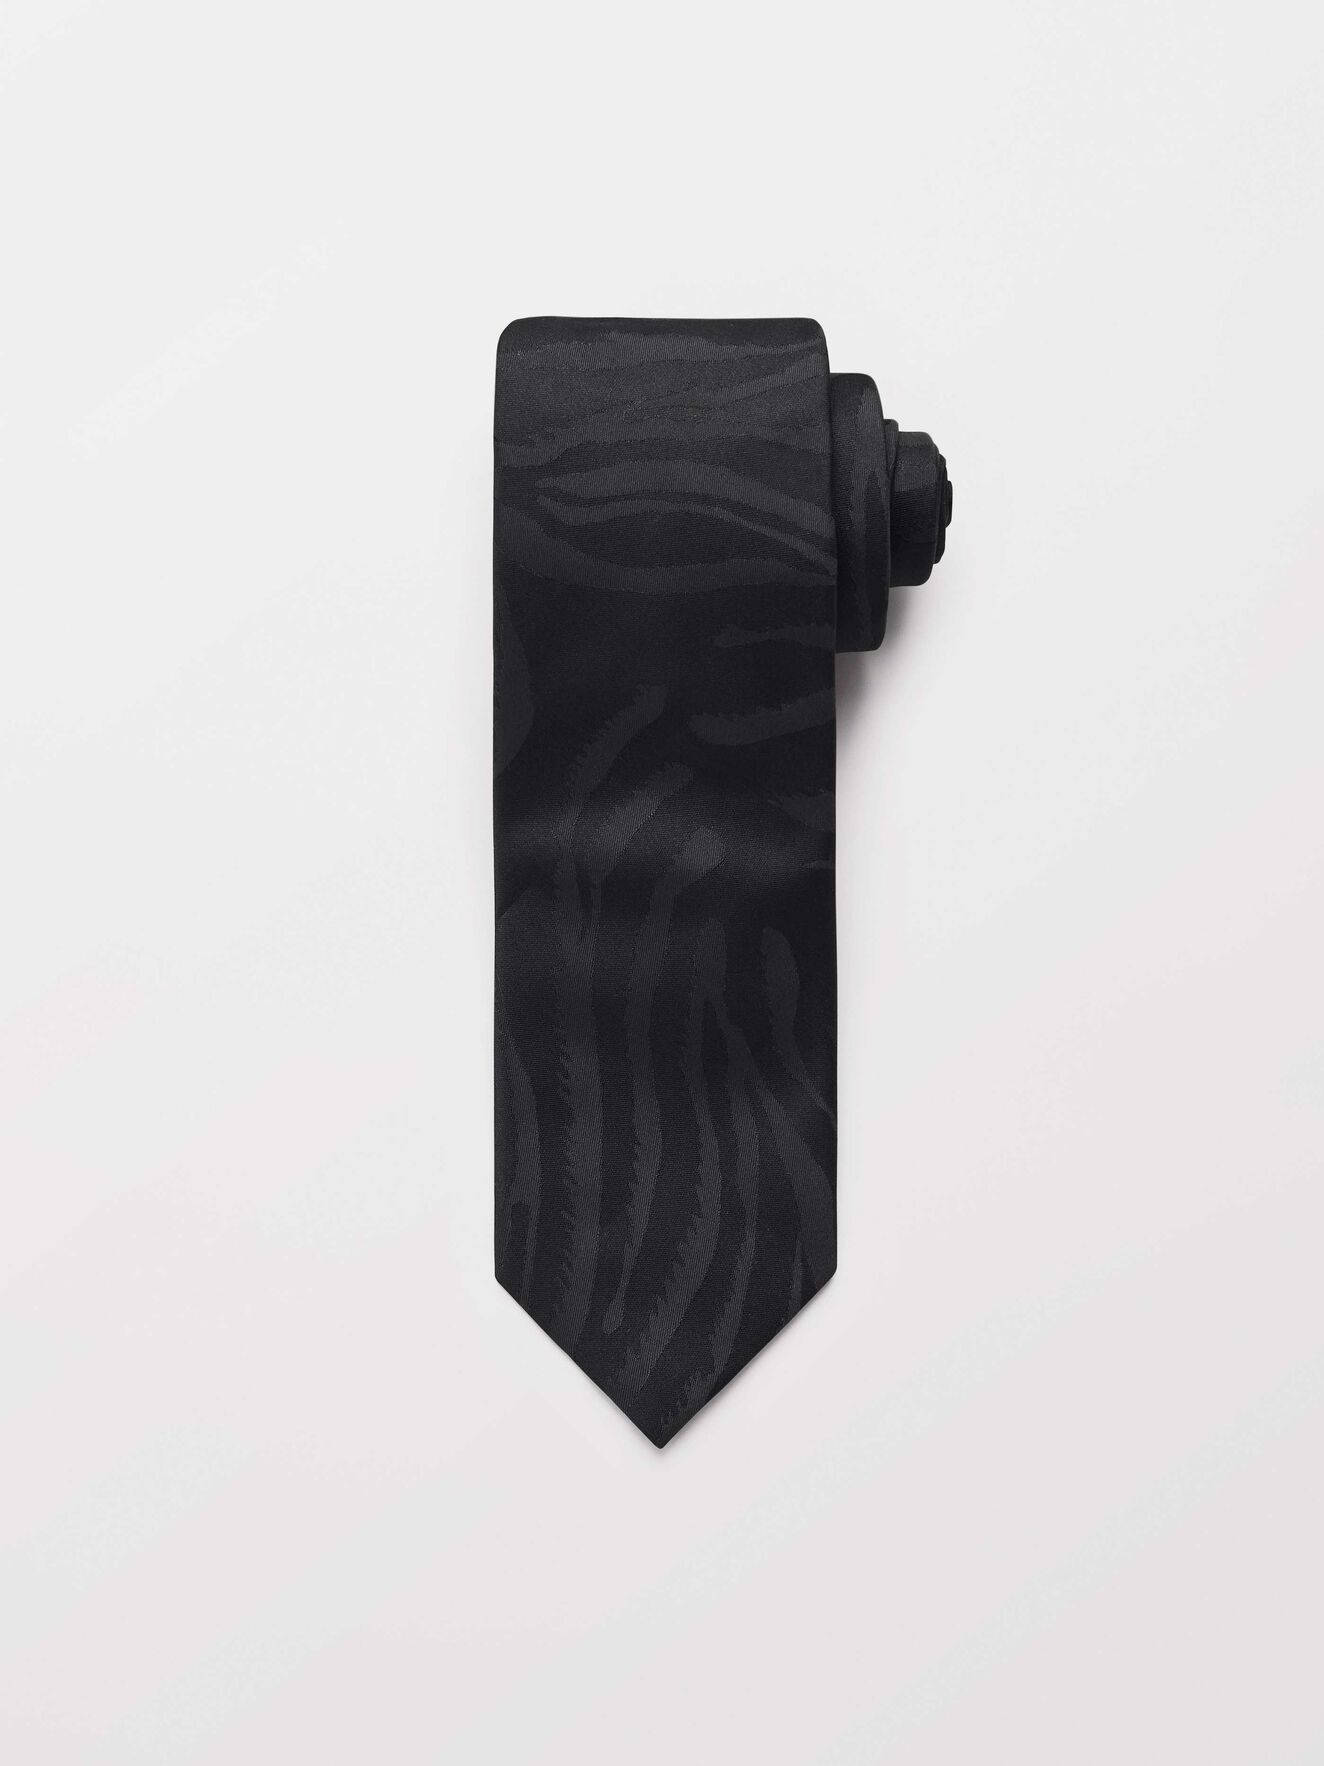 Tenor Tie in Light Ink from Tiger of Sweden